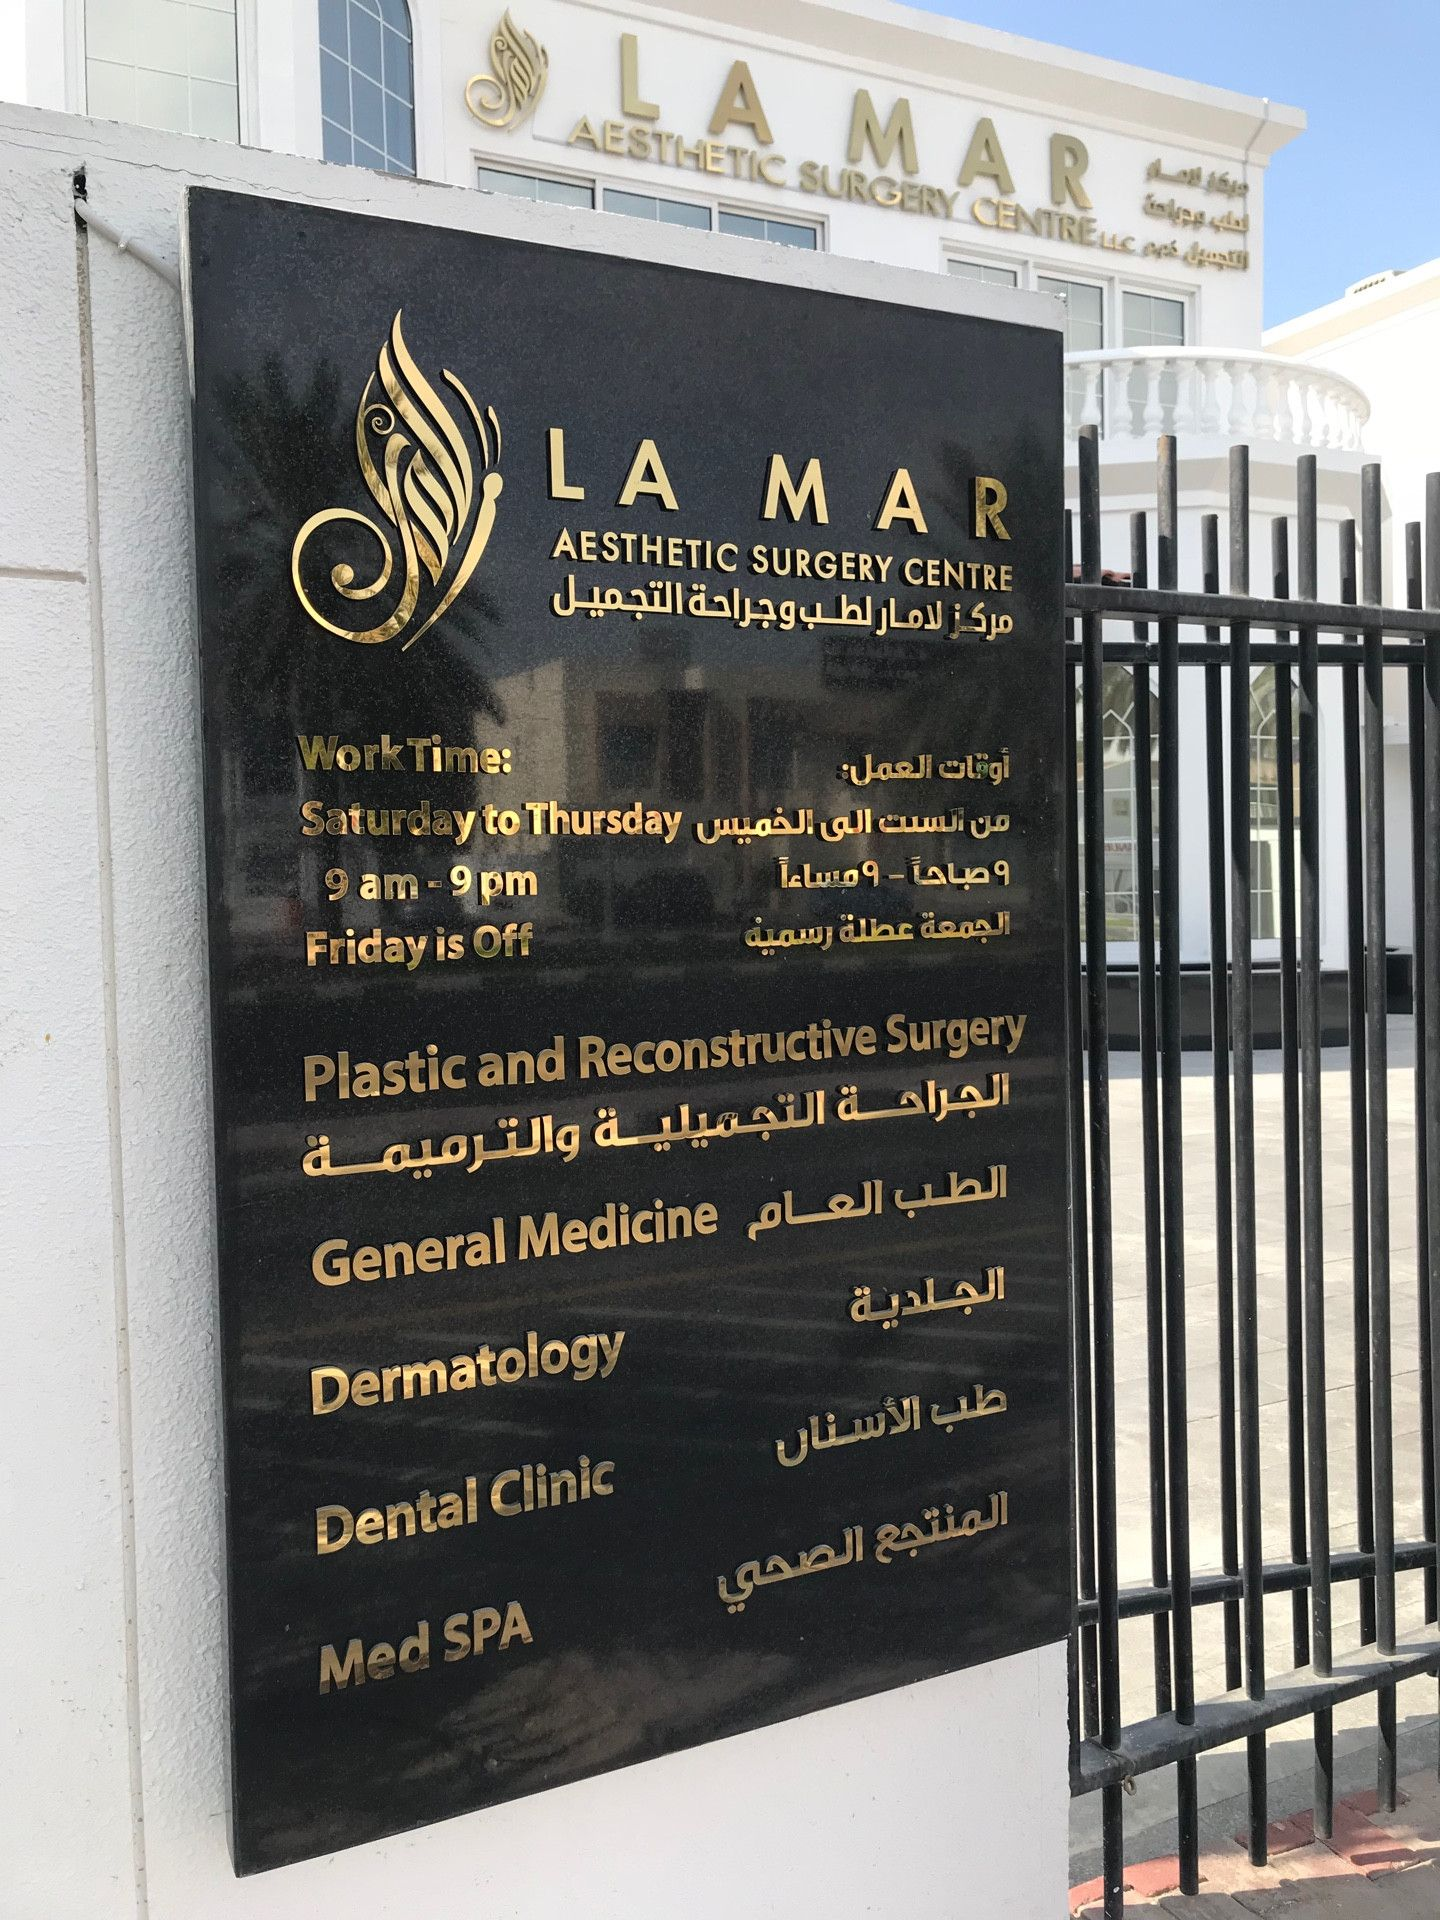 La Mar Aesthetic Surgery Centre 9